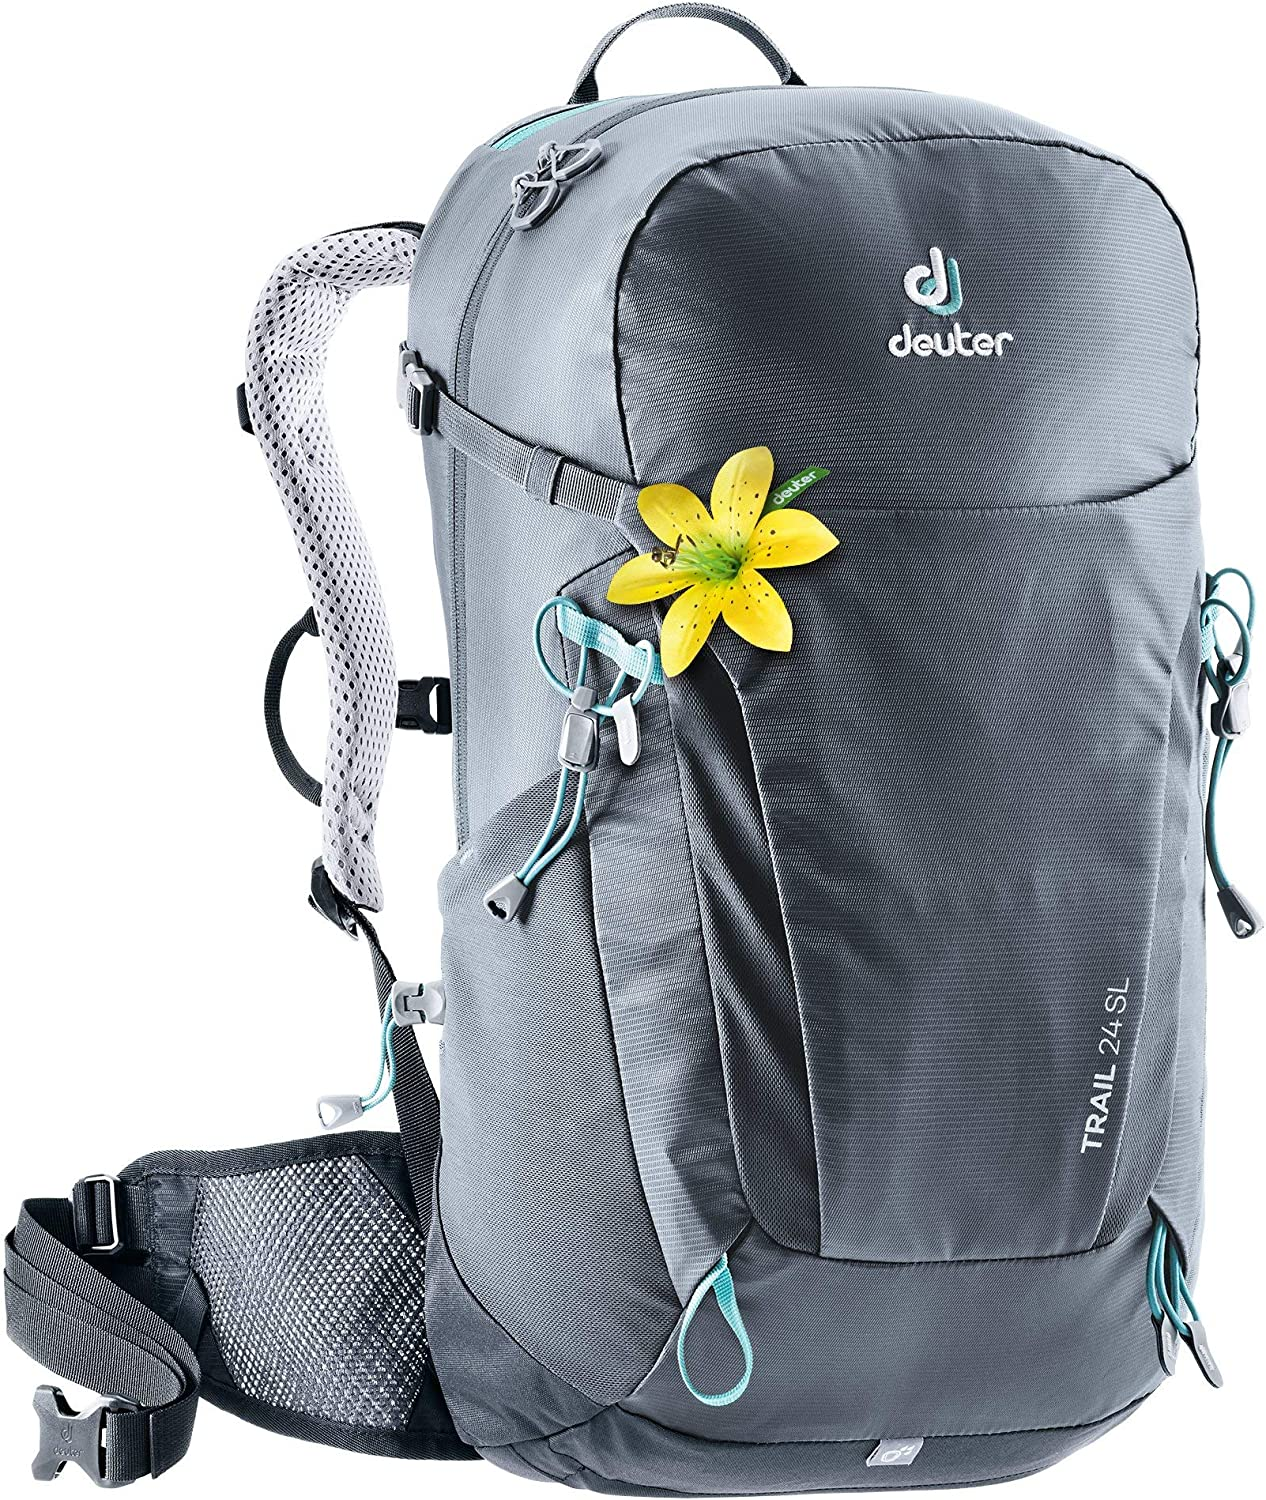 Great hiking backpack is an essential item on Camino de Santiago packing list